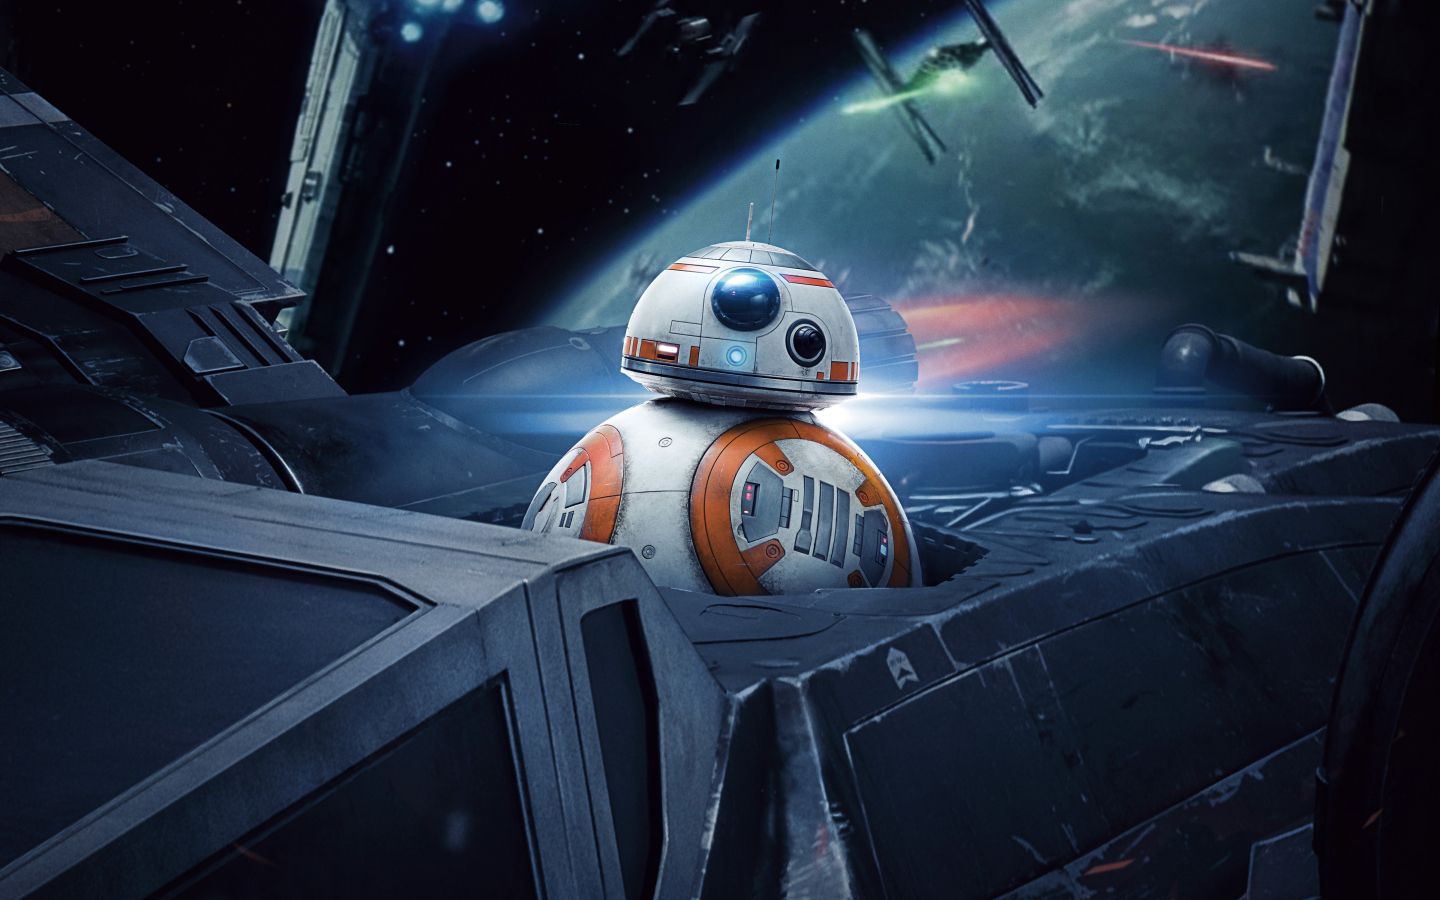 Download 1440x900 Wallpaper R2 D2 Robot 201 Movie Star Wars The Last Jedi 5k Widescreen 16 10 Widescreen 1440x900 Hd Image Background 28807